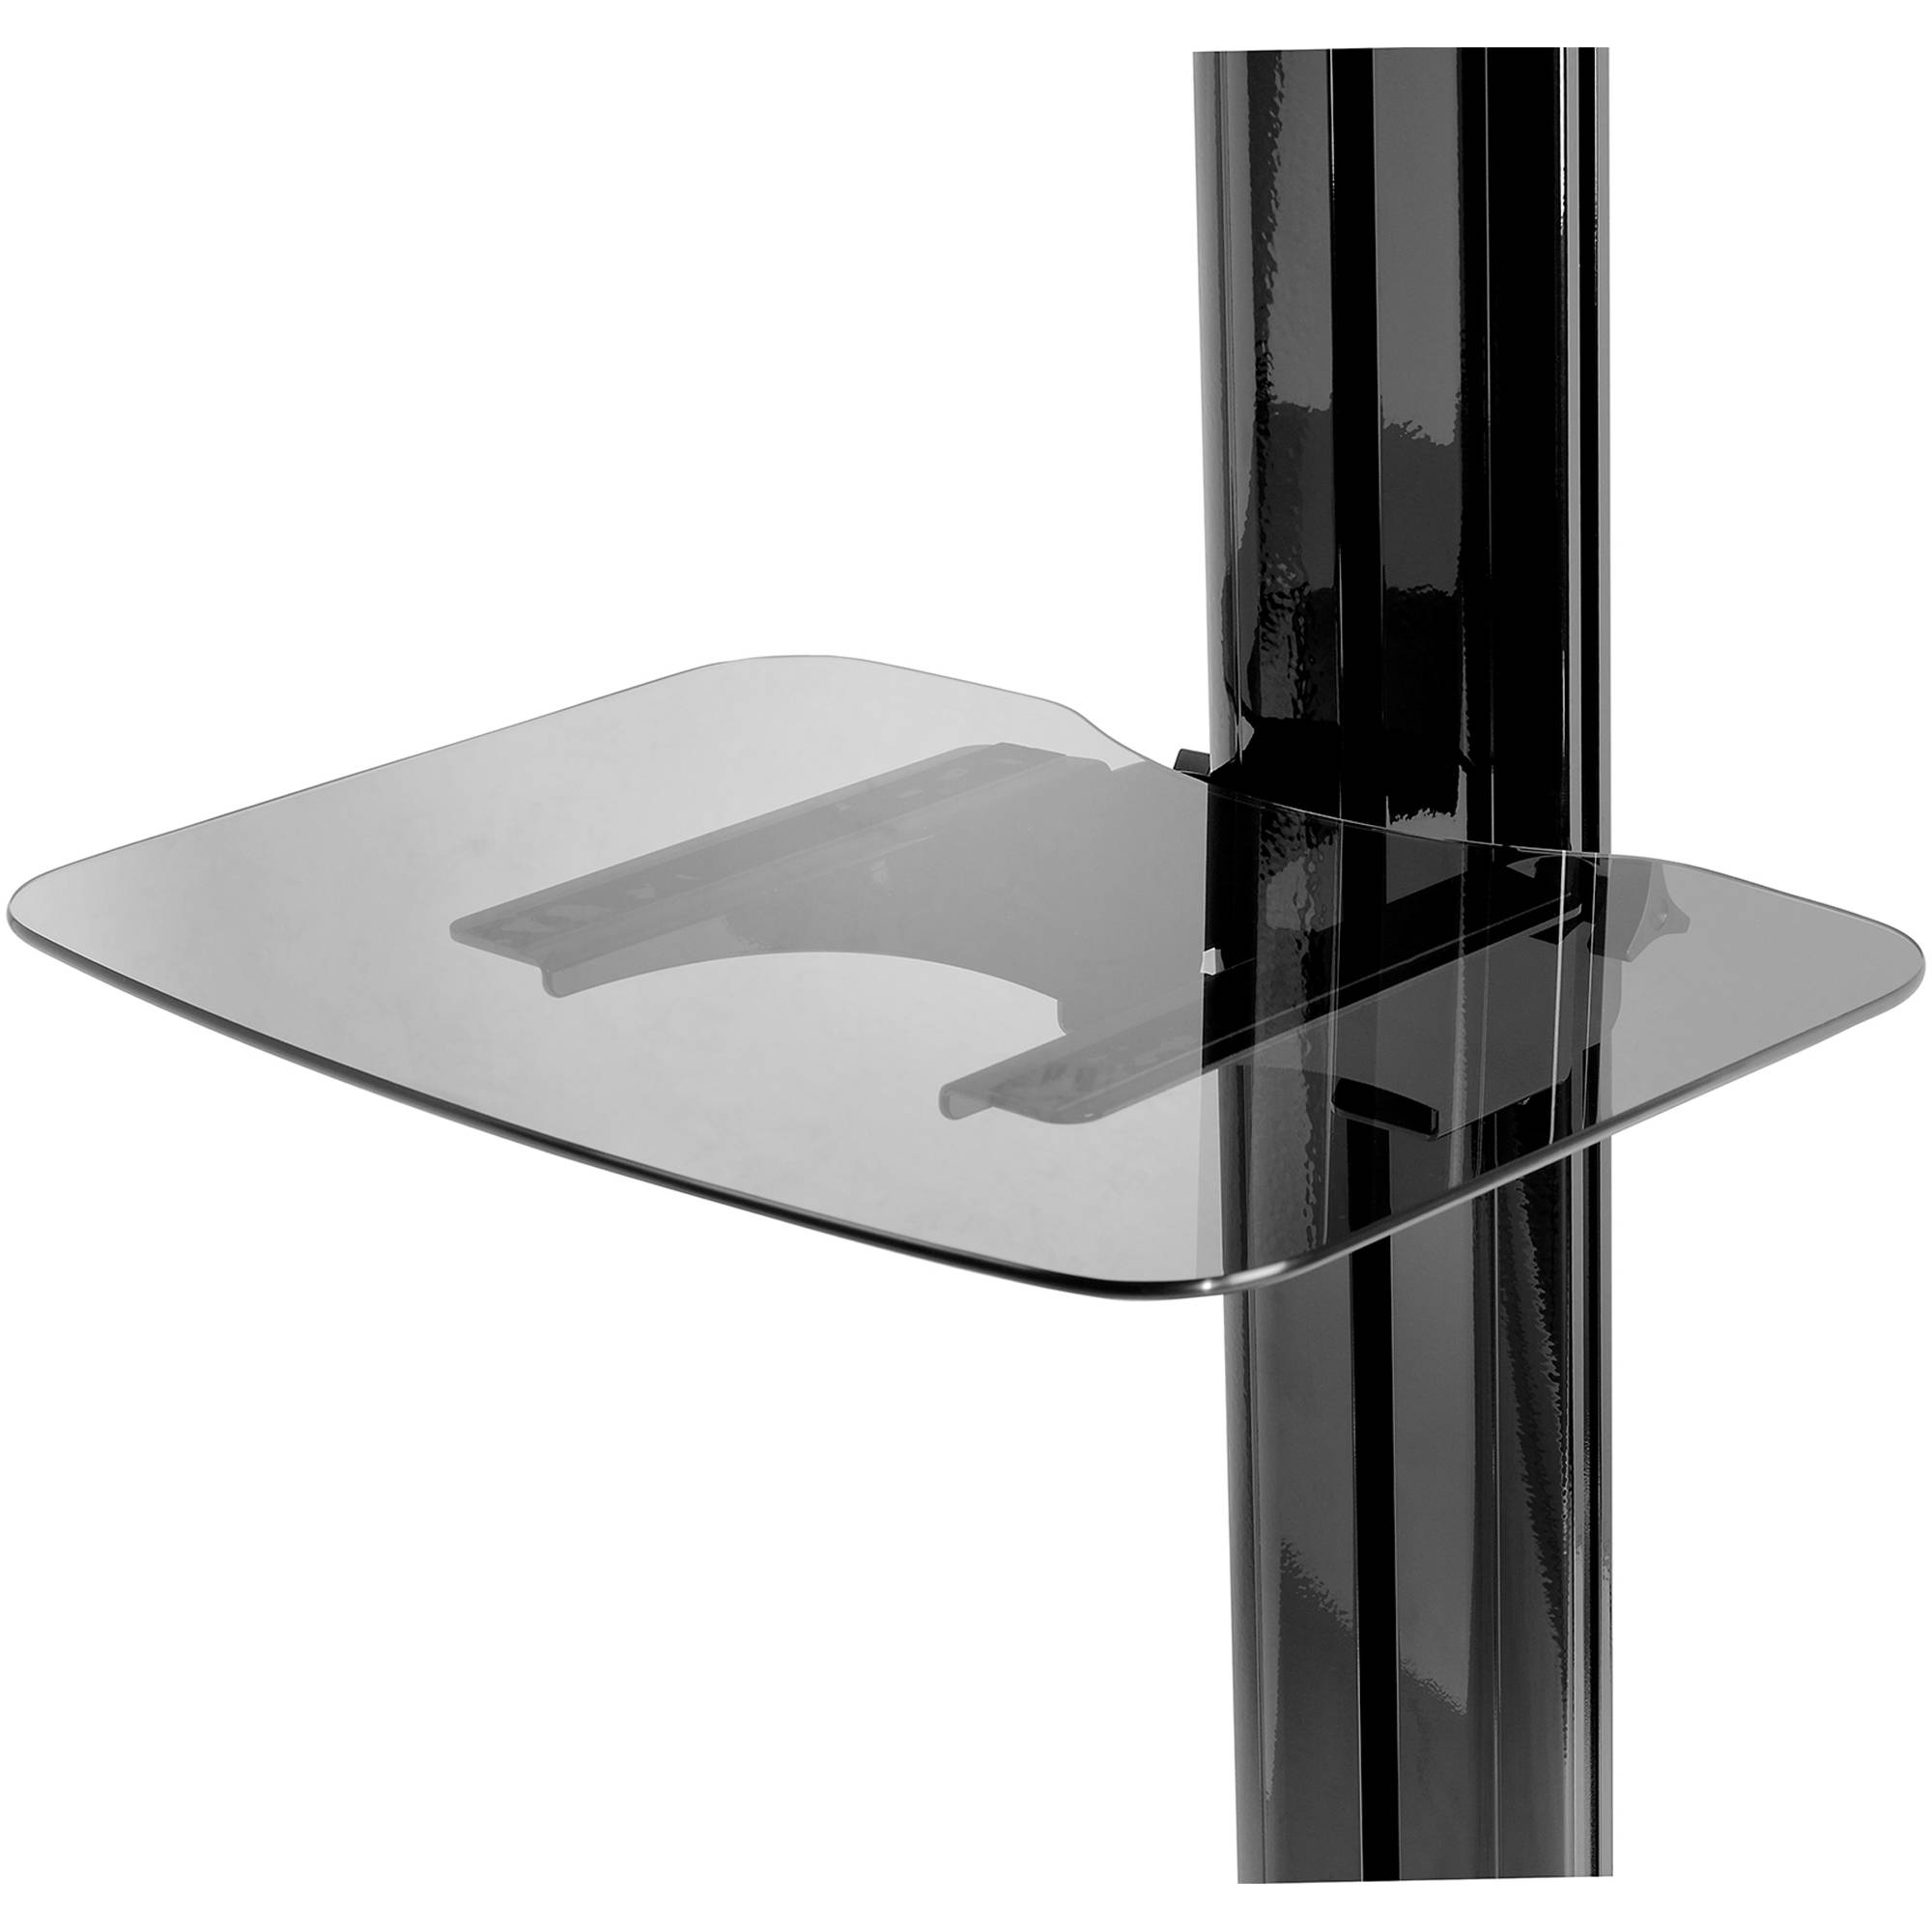 Peerless Av Acc Gs1 Smartmount Tempered Glass Shelf For Sr Carts And Ss Stands Black